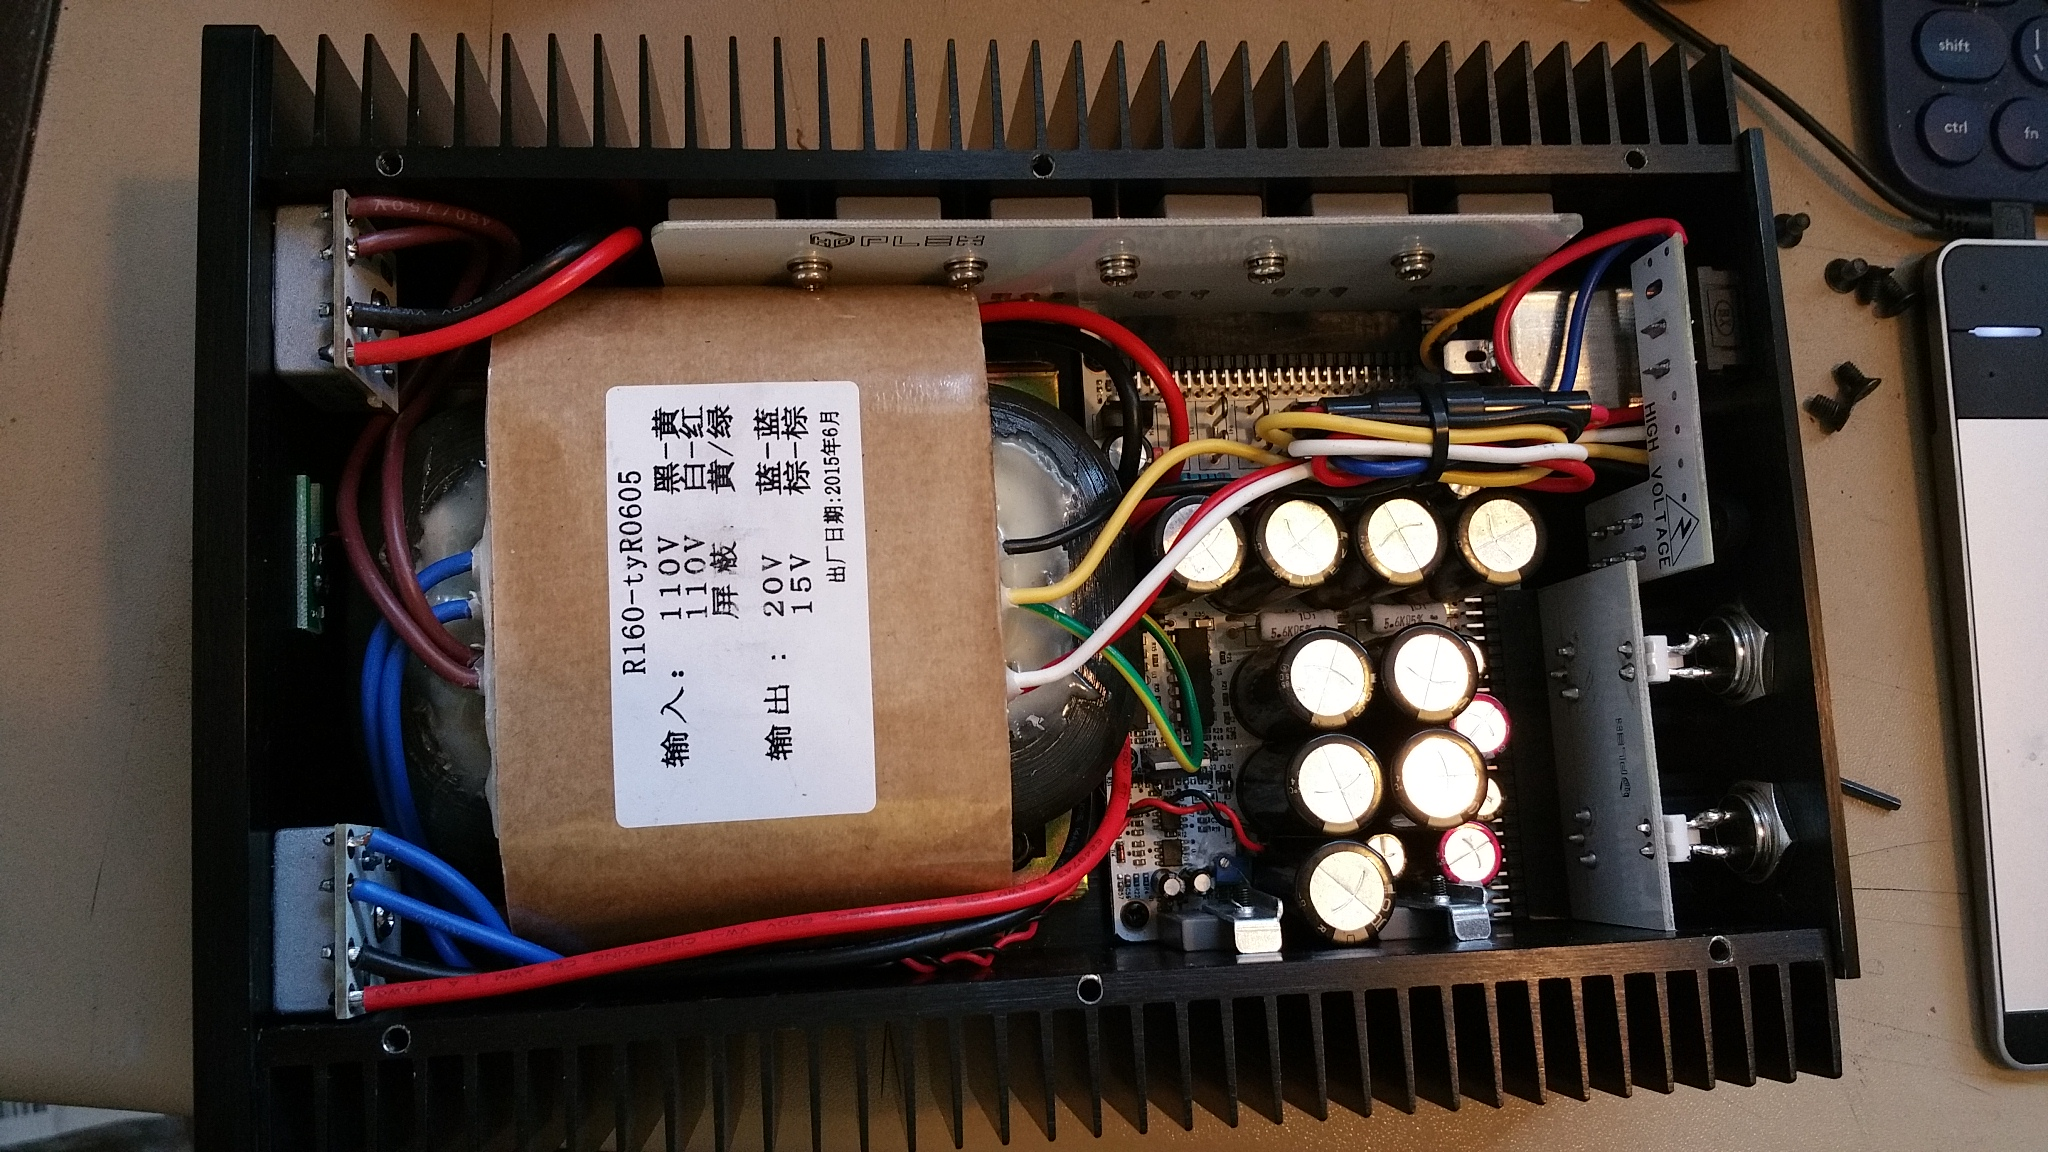 usb wiring diagram motherboard timer linear psu roundup? - page 18